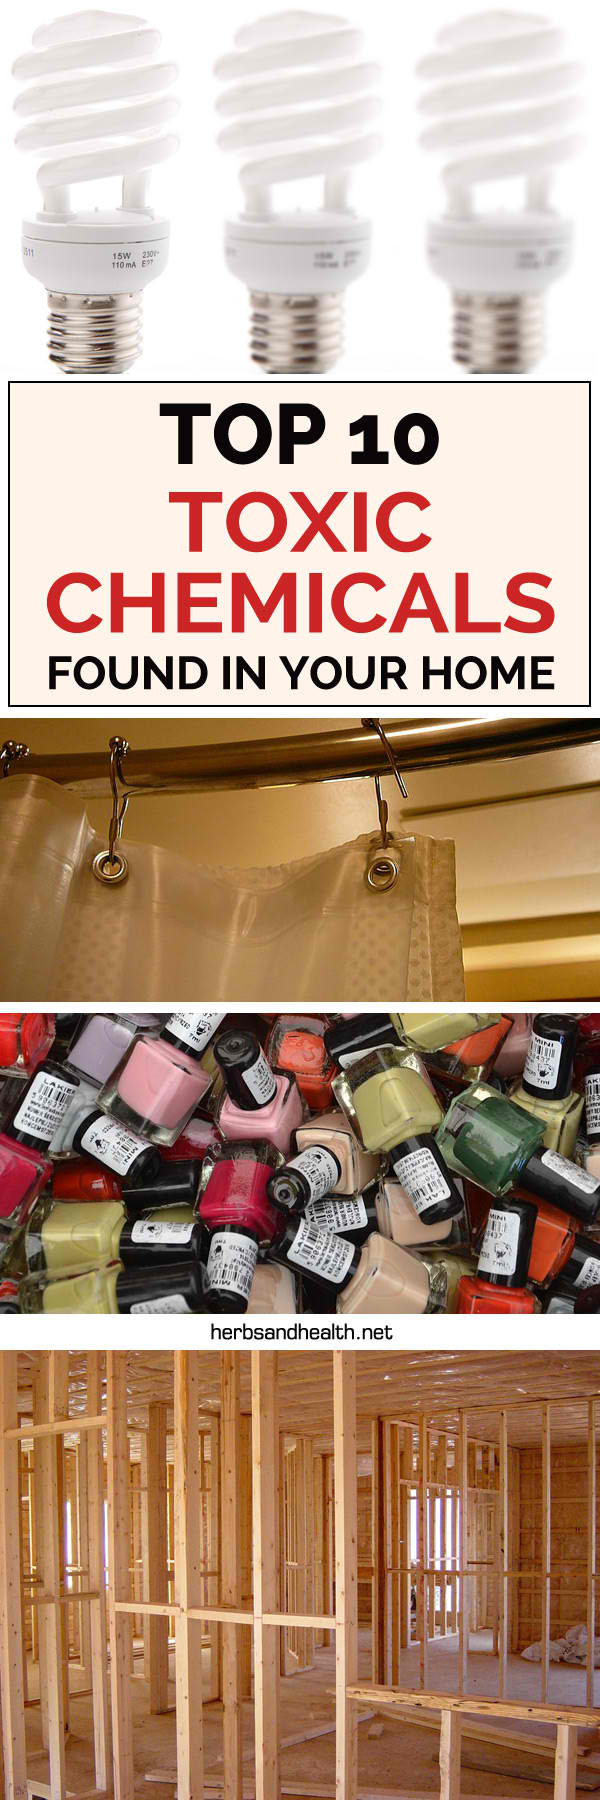 Top 10 Worst Toxic Chemicals Found In Your Home